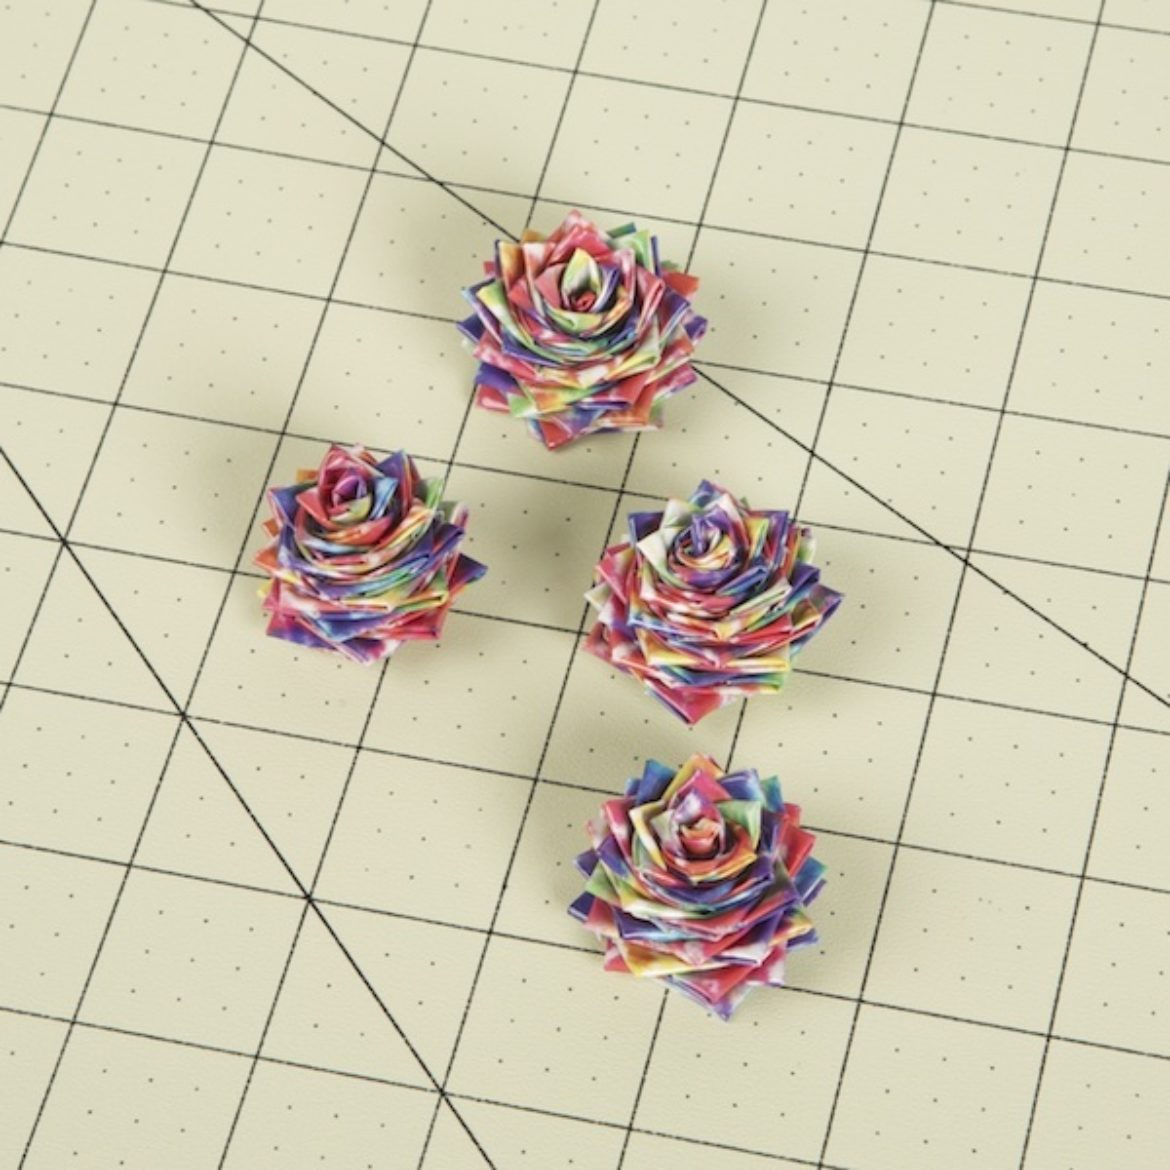 4 roses identical to the one created in the previous step